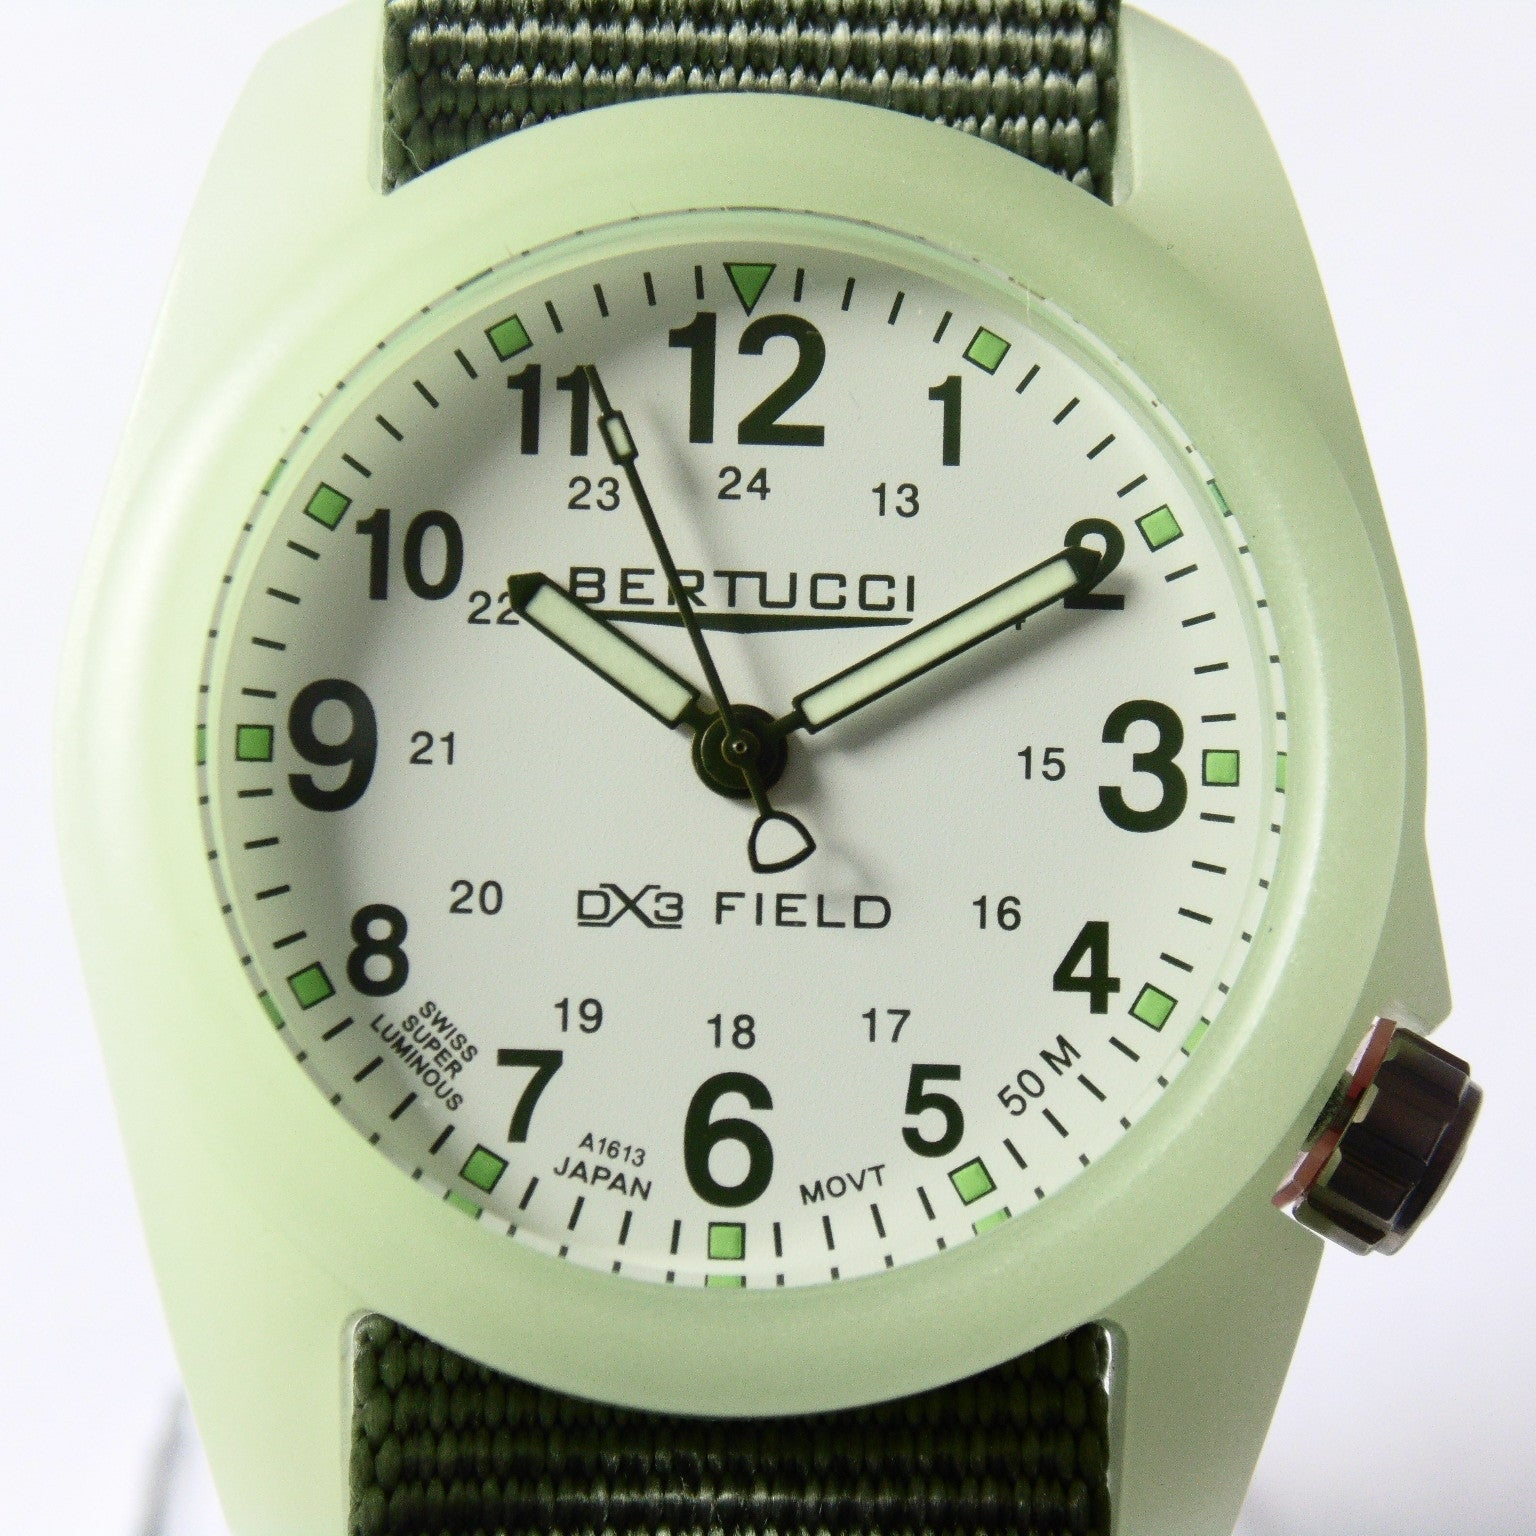 Bertucci DX3 Luminous Resin Watch, Olive Green Nylon Strap, White Dial - 11028 - Watchfinder General - UK suppliers of Russian Vostok Parnis Watches MWC G10  - 3